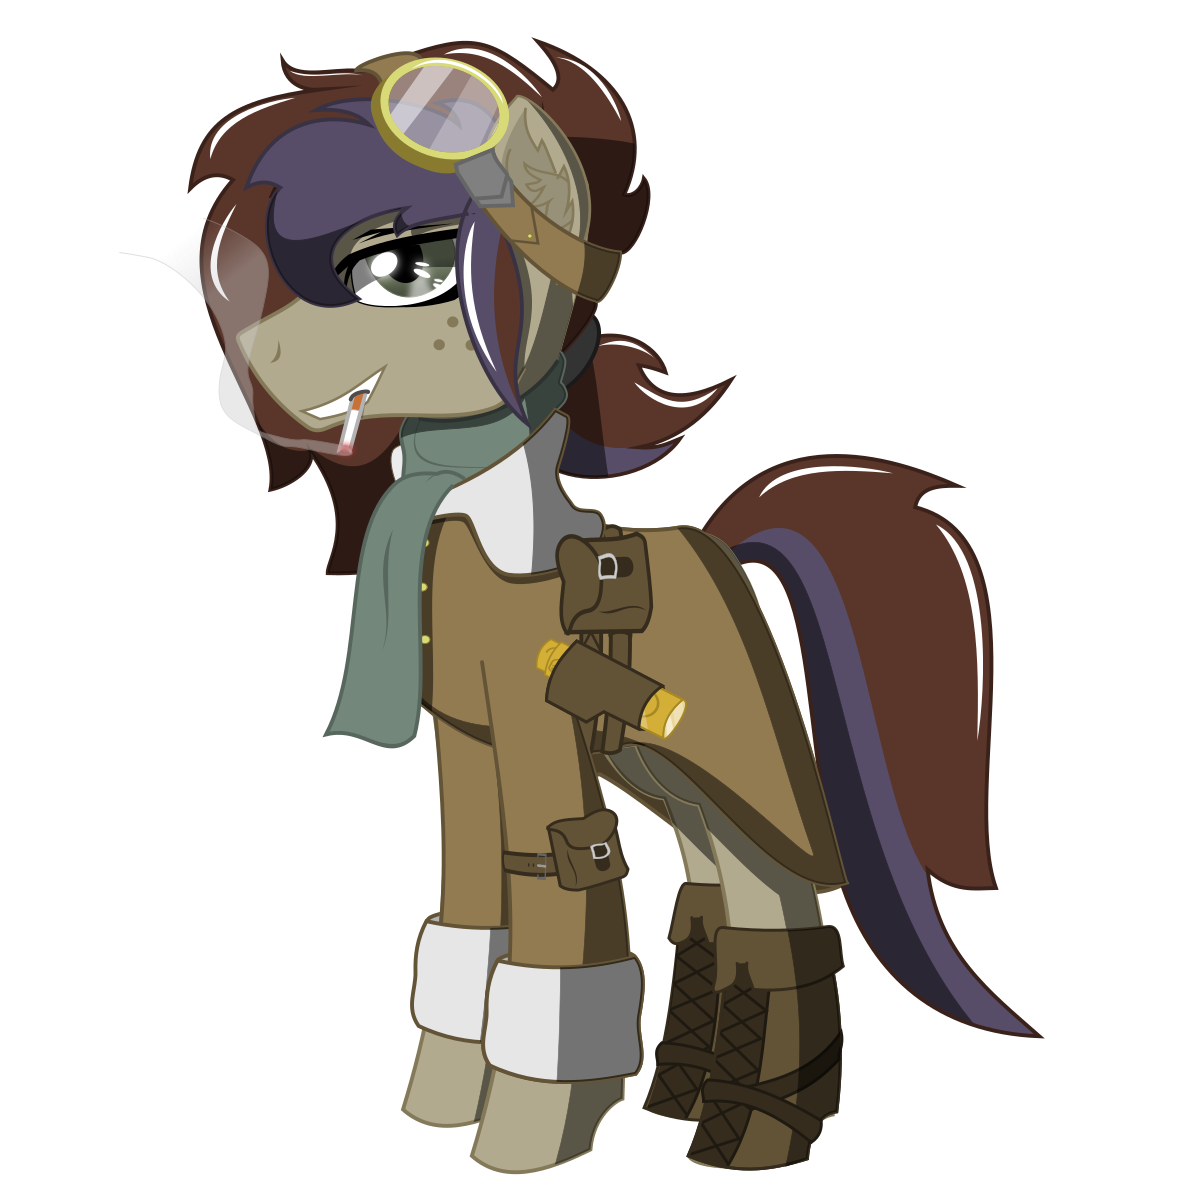 Airship drawing fictional. Ace steam scout equestria